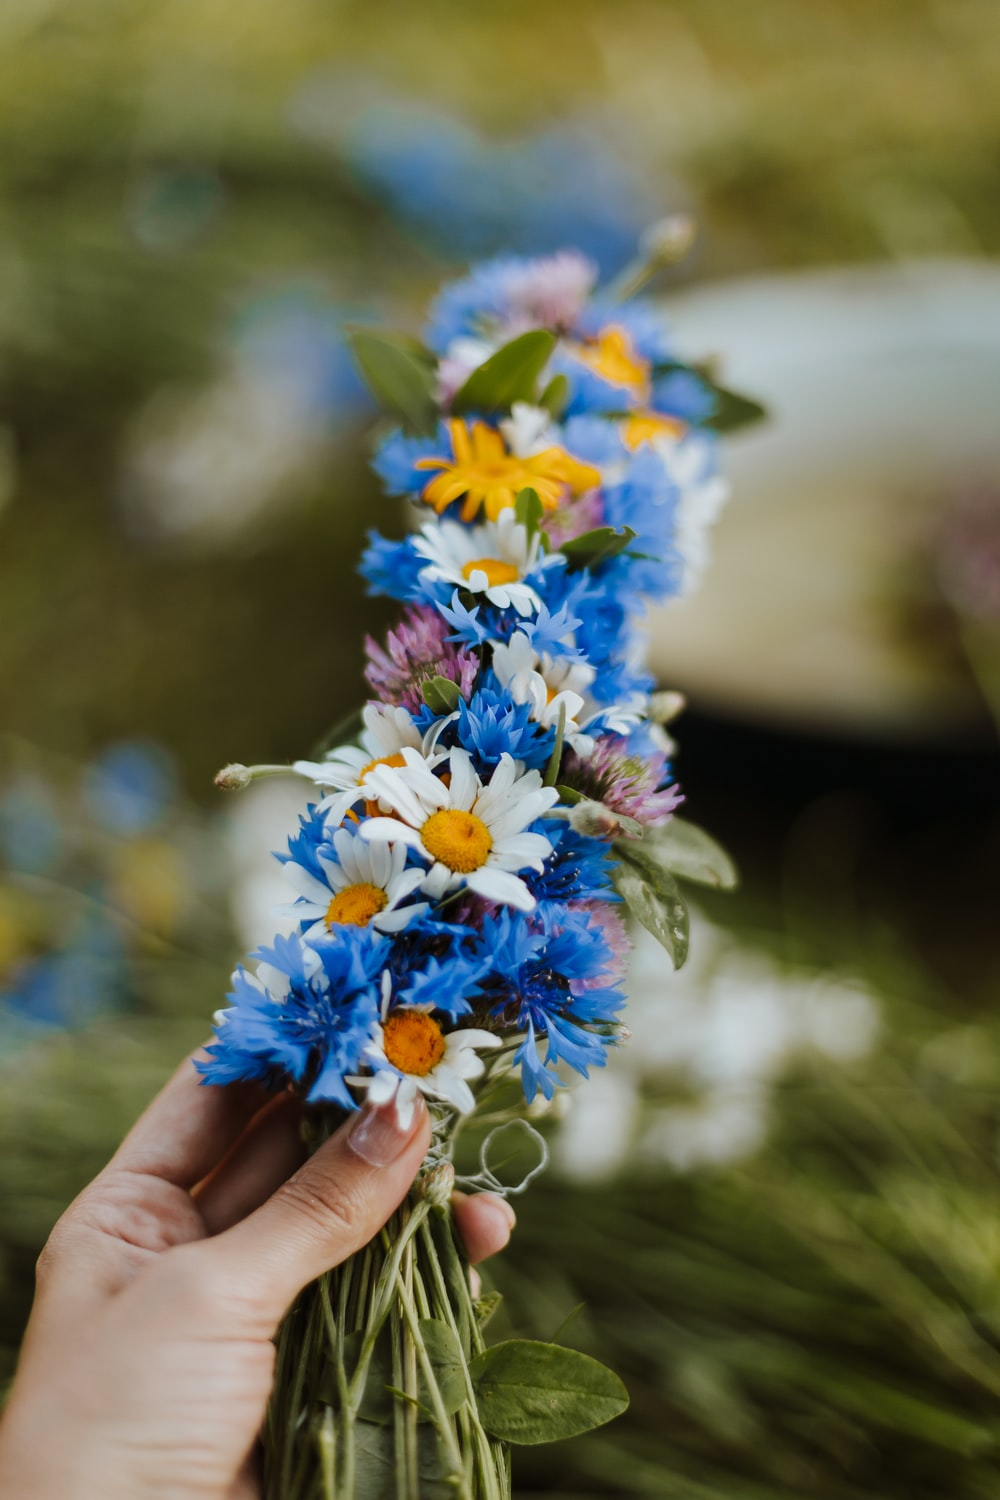 blue and white flowers in persons hand